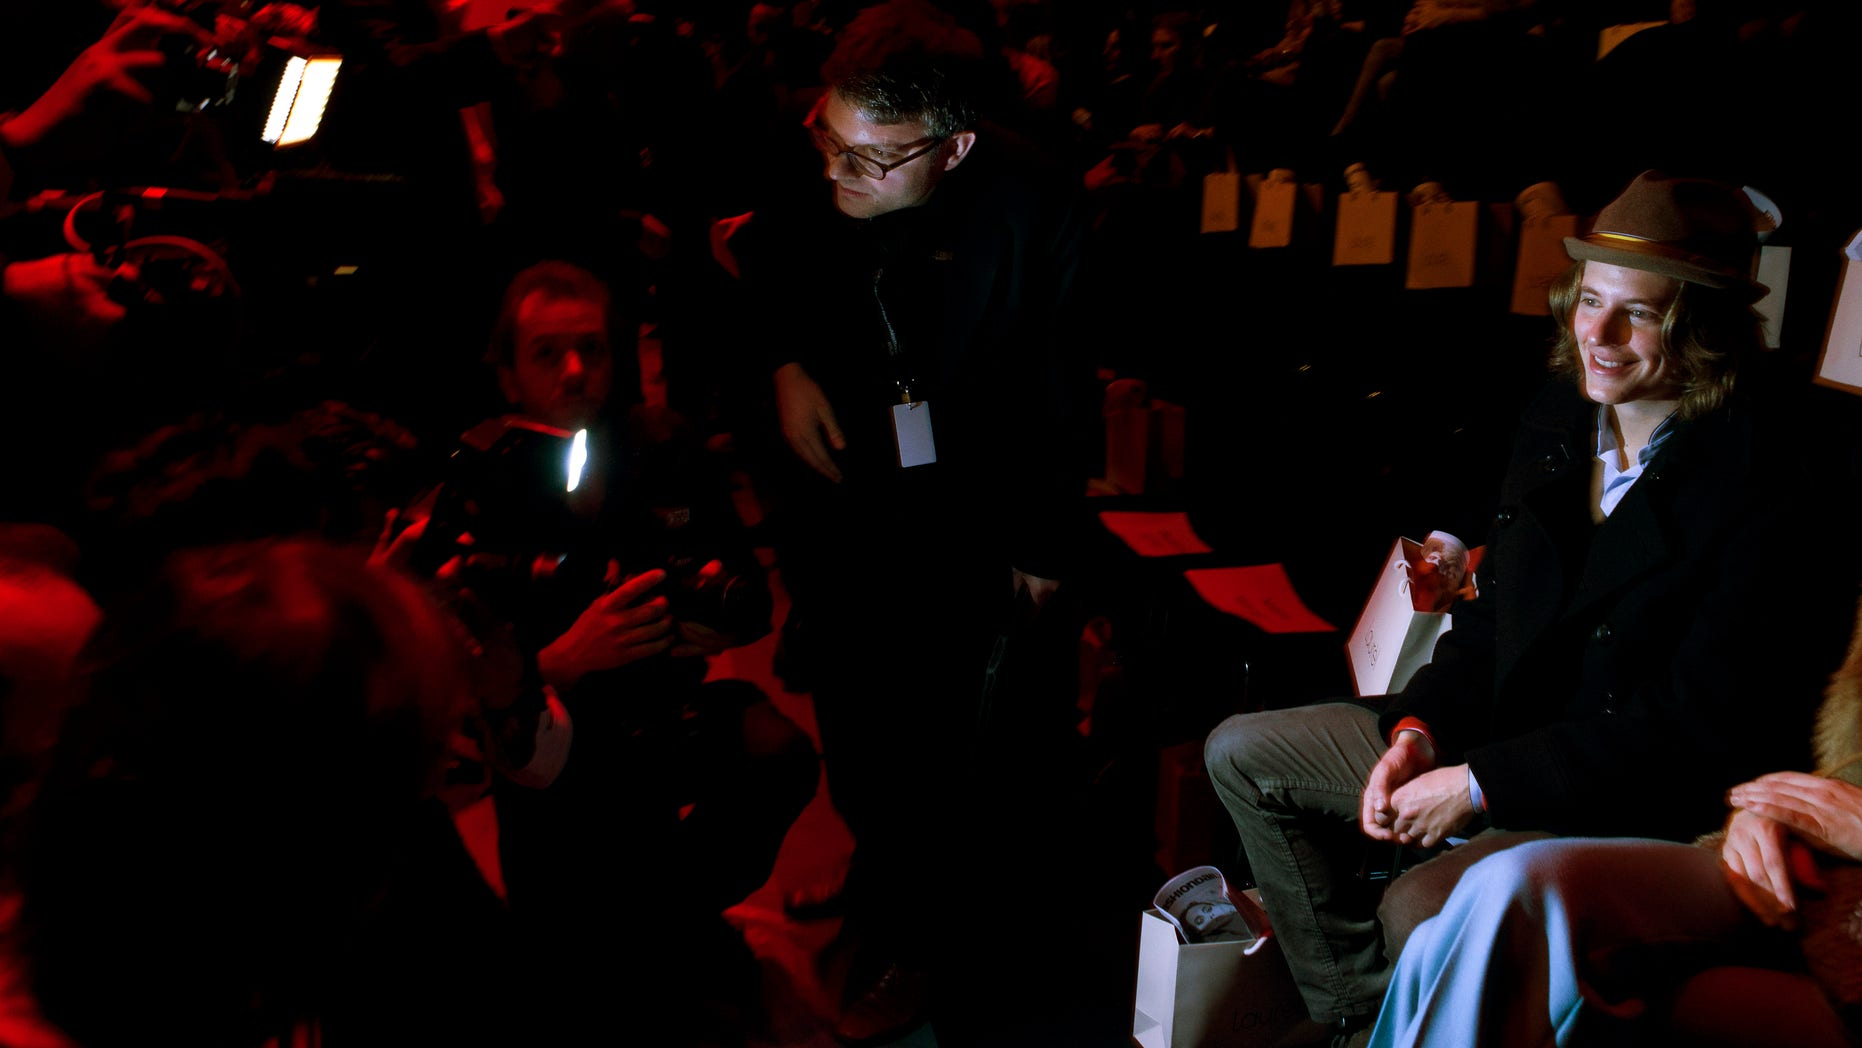 Jan. 19, 2012: ierre Sarkozy, right, son of French President Nicolas Sarkozy, is surrounded by media prior to the fashion show of fashion brand Laurel at the Fashion Week in Berlin.